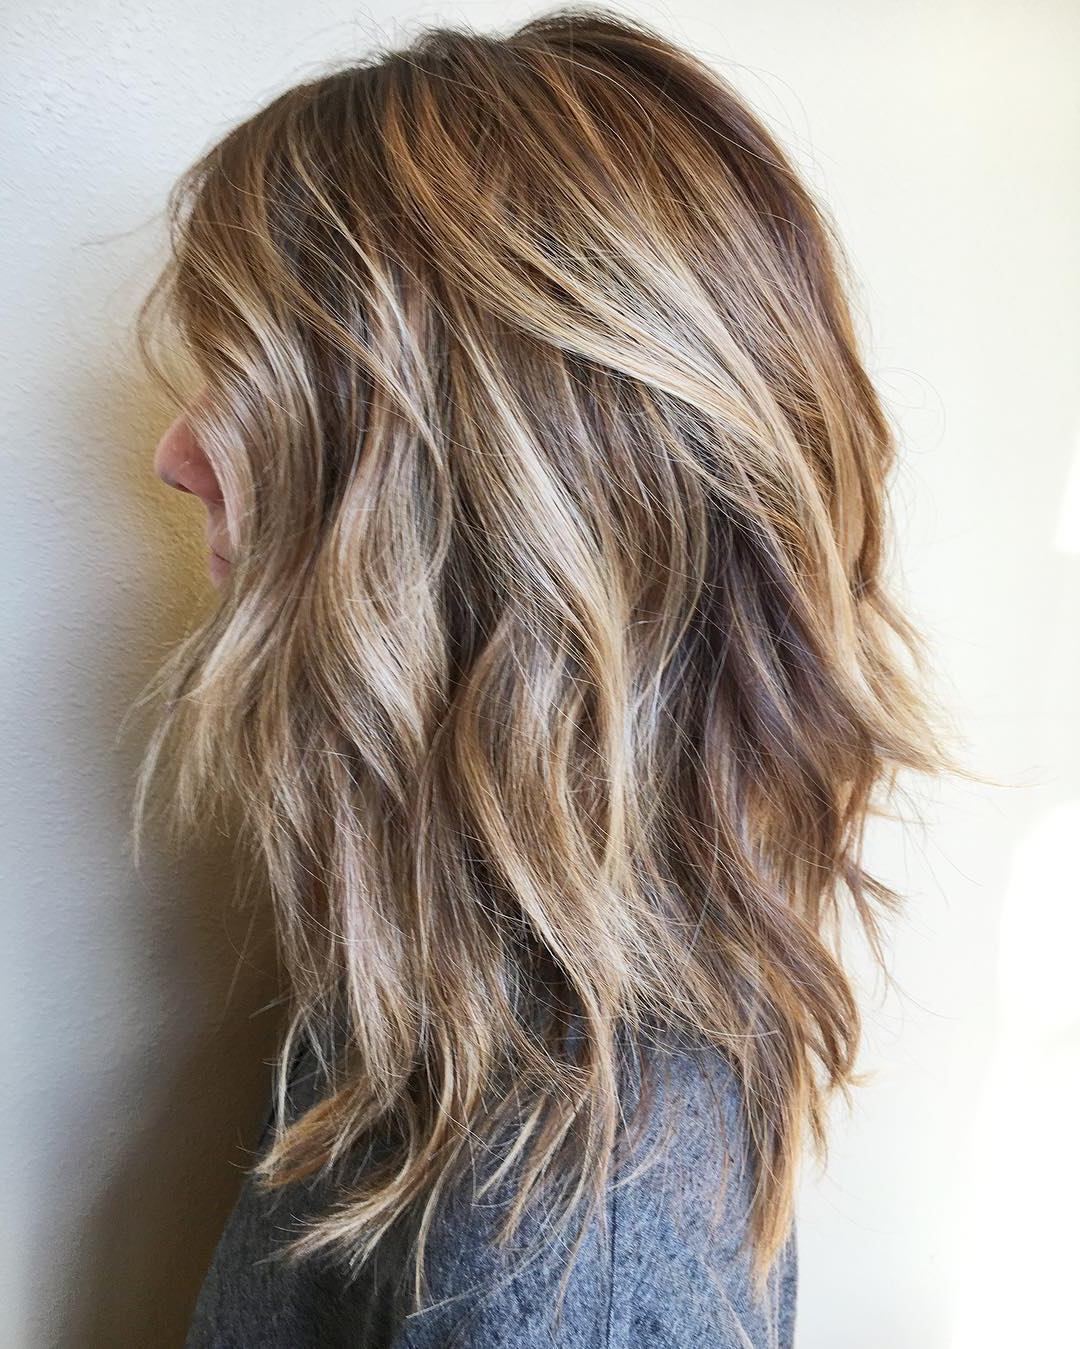 10 Messy Medium Hairstyles For Thick Hair 2019 With Regard To 2017 Shaggy Medium Hairstyles (Gallery 12 of 20)